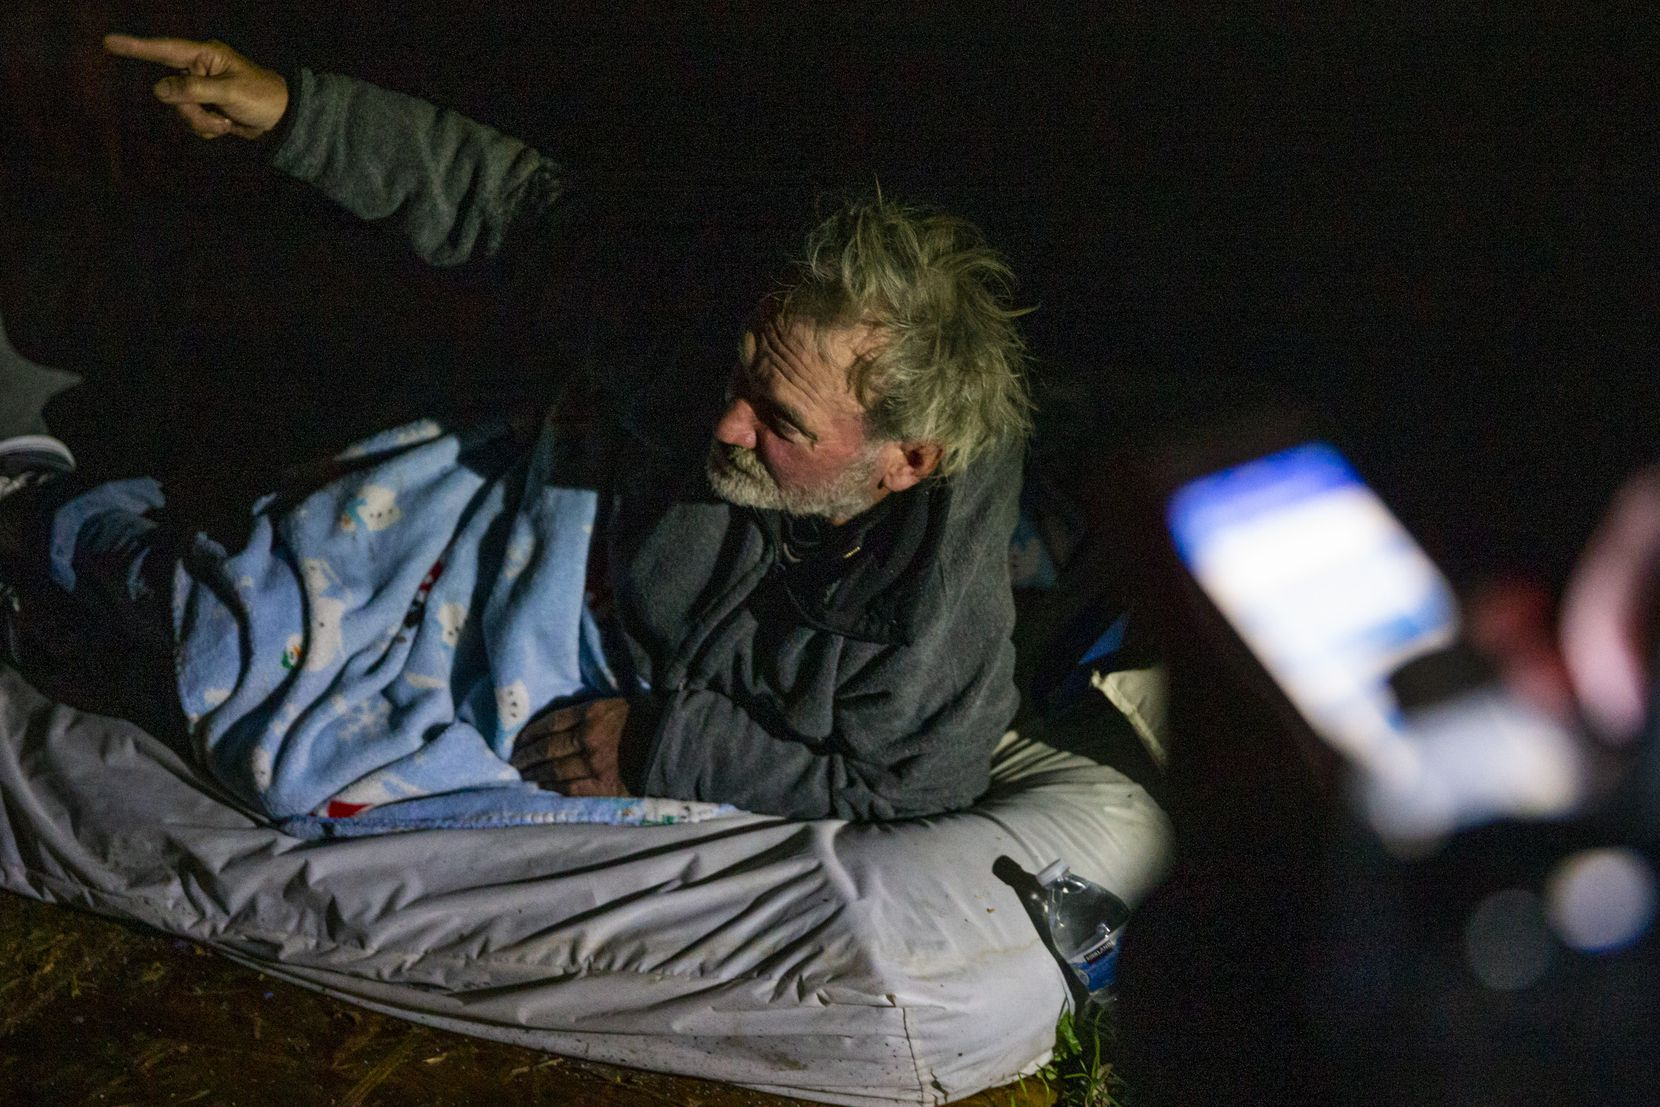 On a Thursday night in January, volunteers from the Oak Lawn United Methodist Church scoured the neighborhood to try to count every homeless person. That night, Chester Ray Corder was found sleeping on a mattress under a staircase outside a dilapidated building.